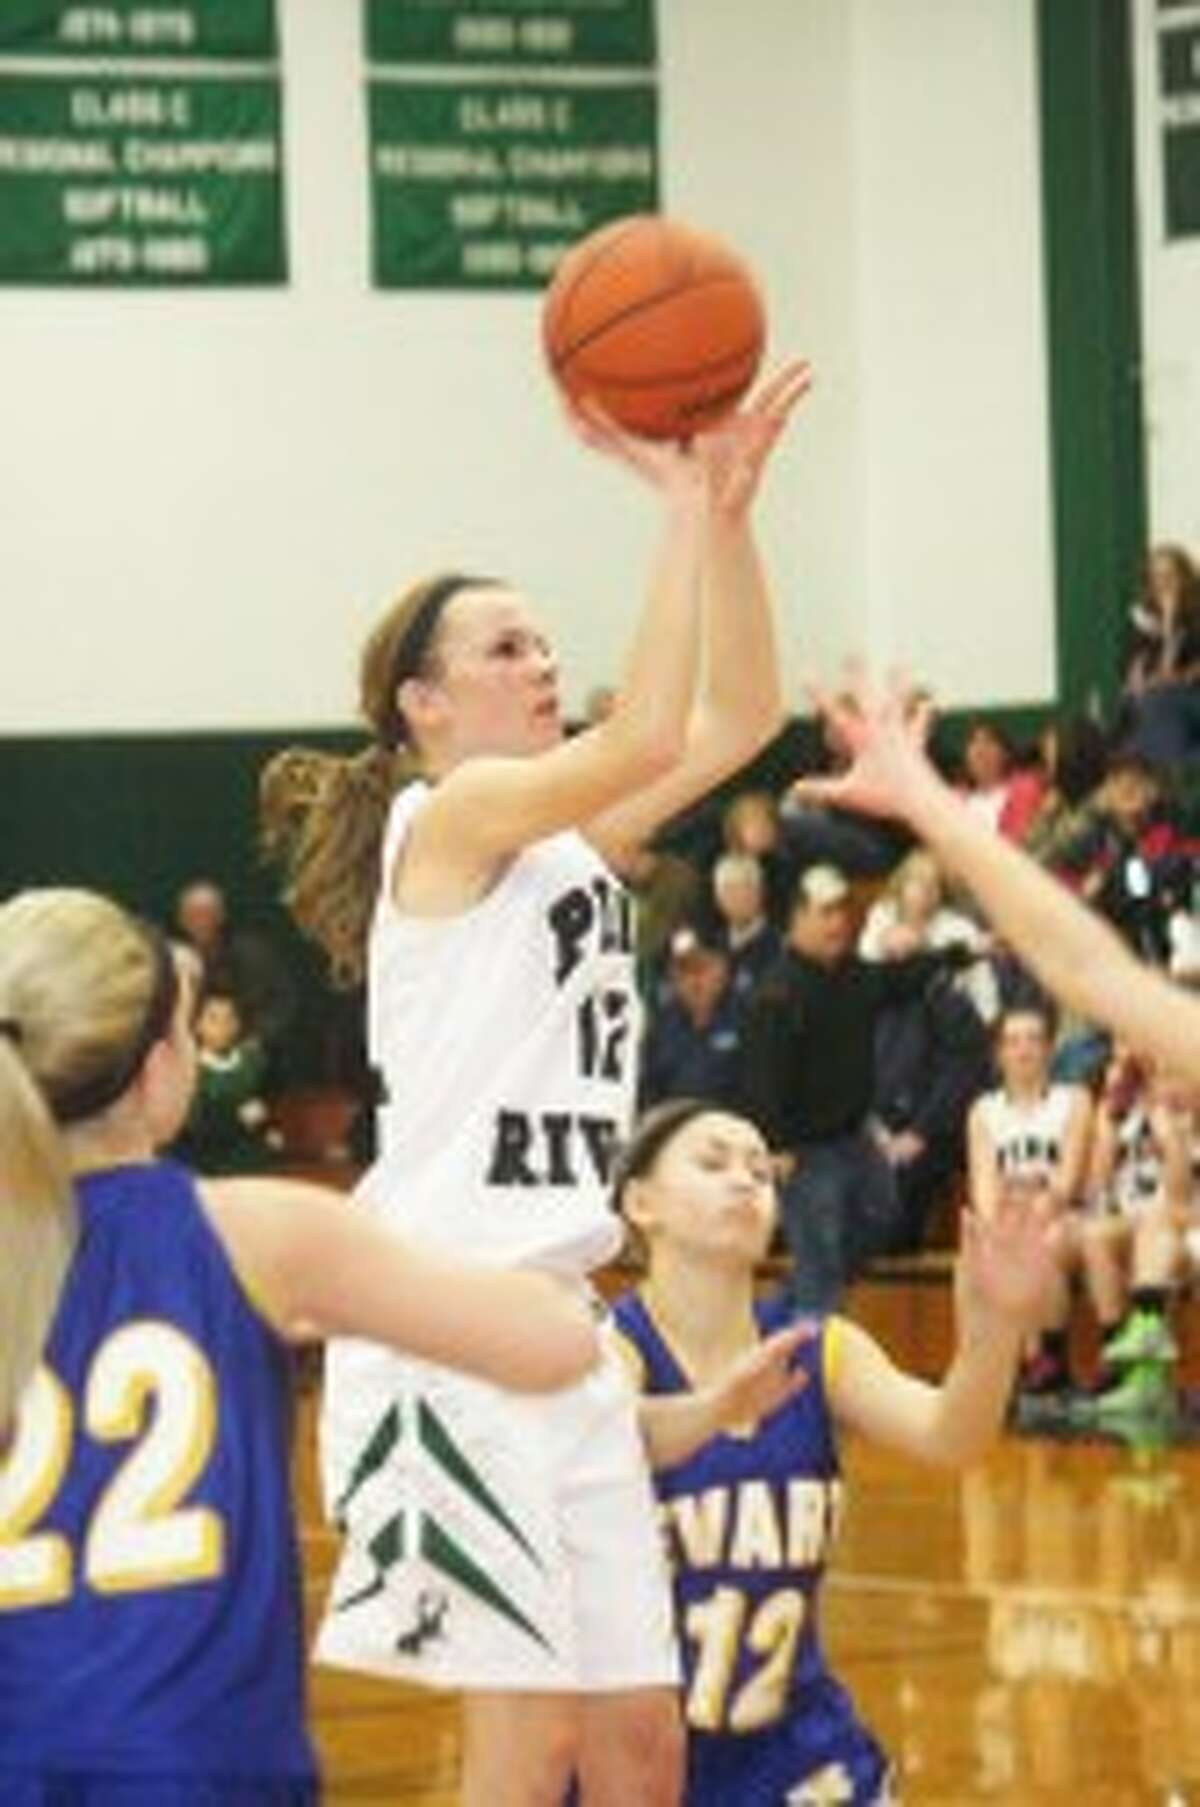 IMPROVED: Jamie Justin (12) was among the all-league players this season for Pine River. (File photo)